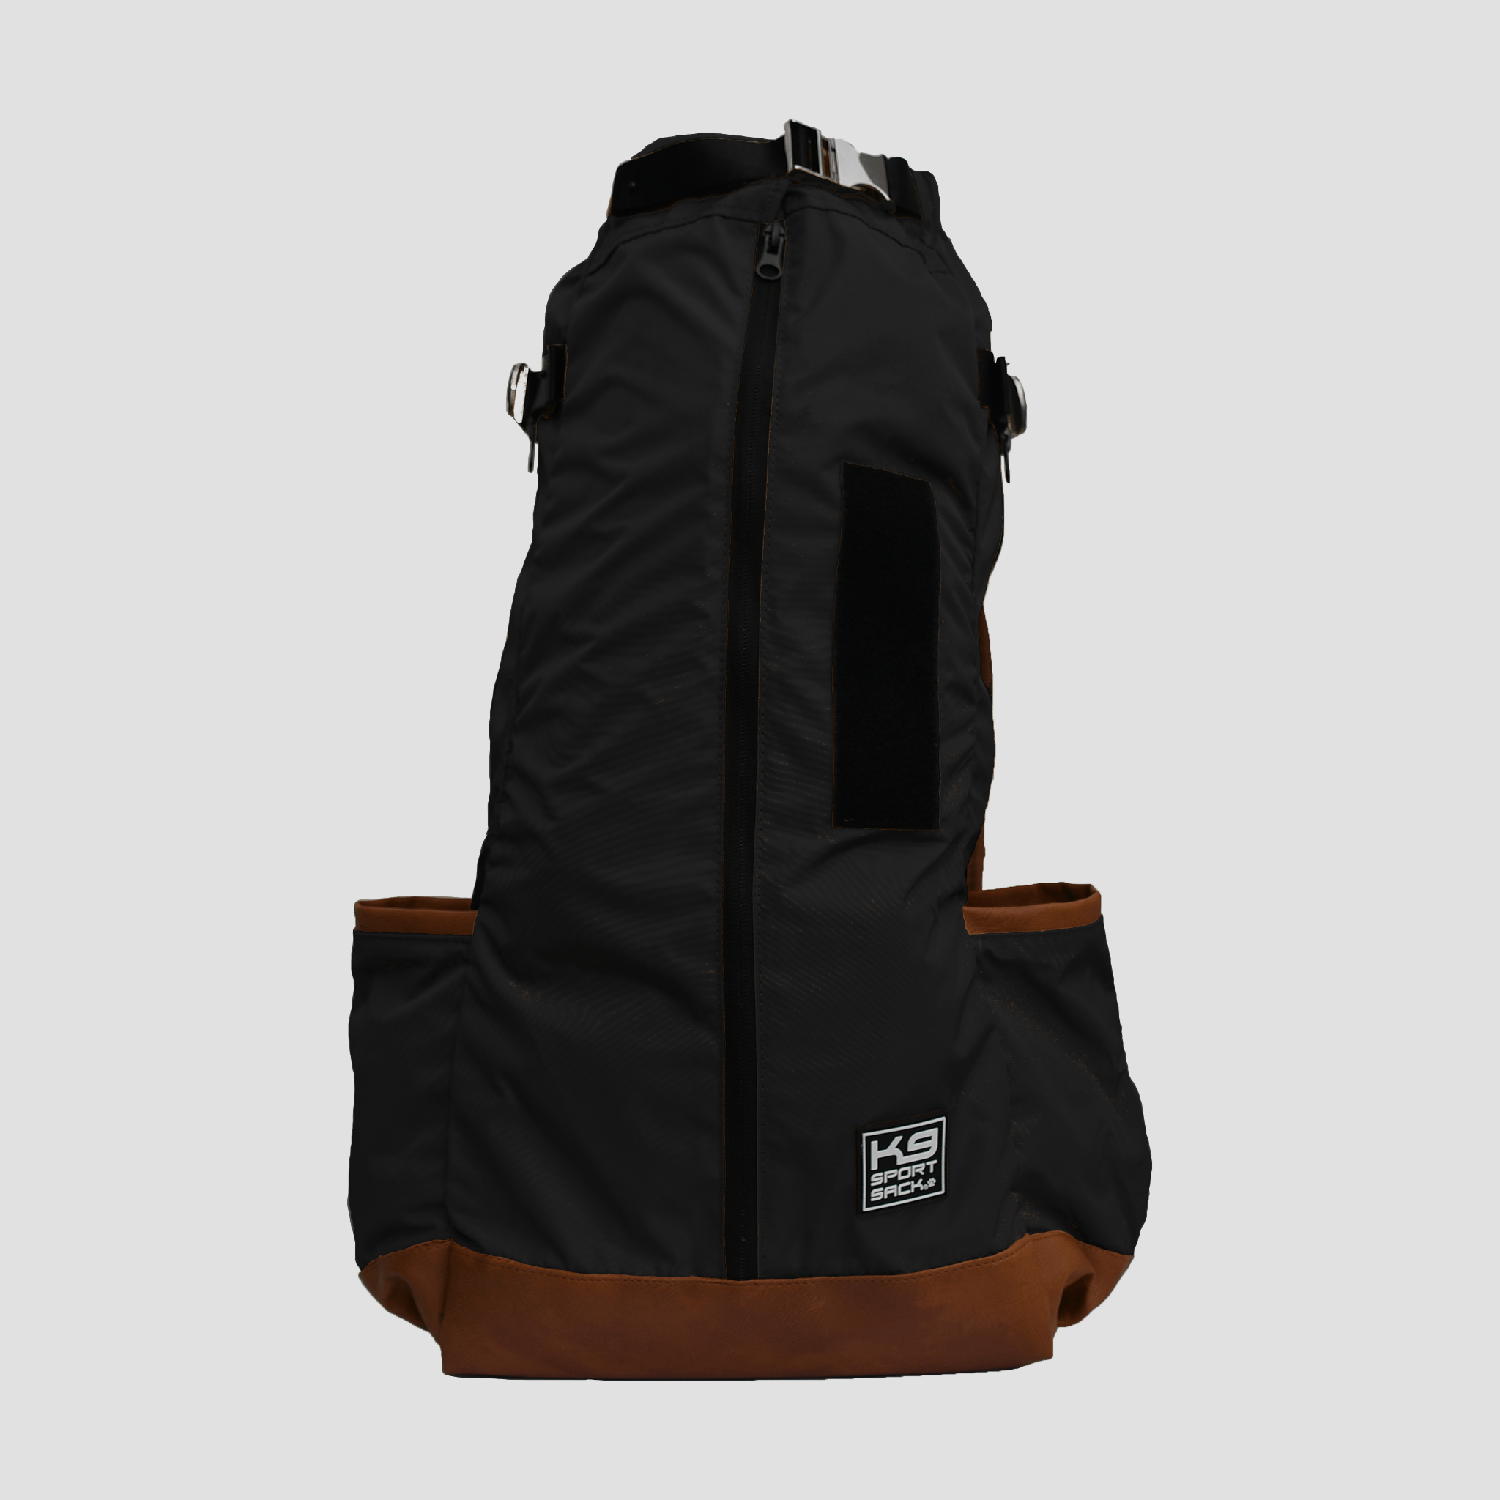 K9 Sport Sack Urban 2 - Black